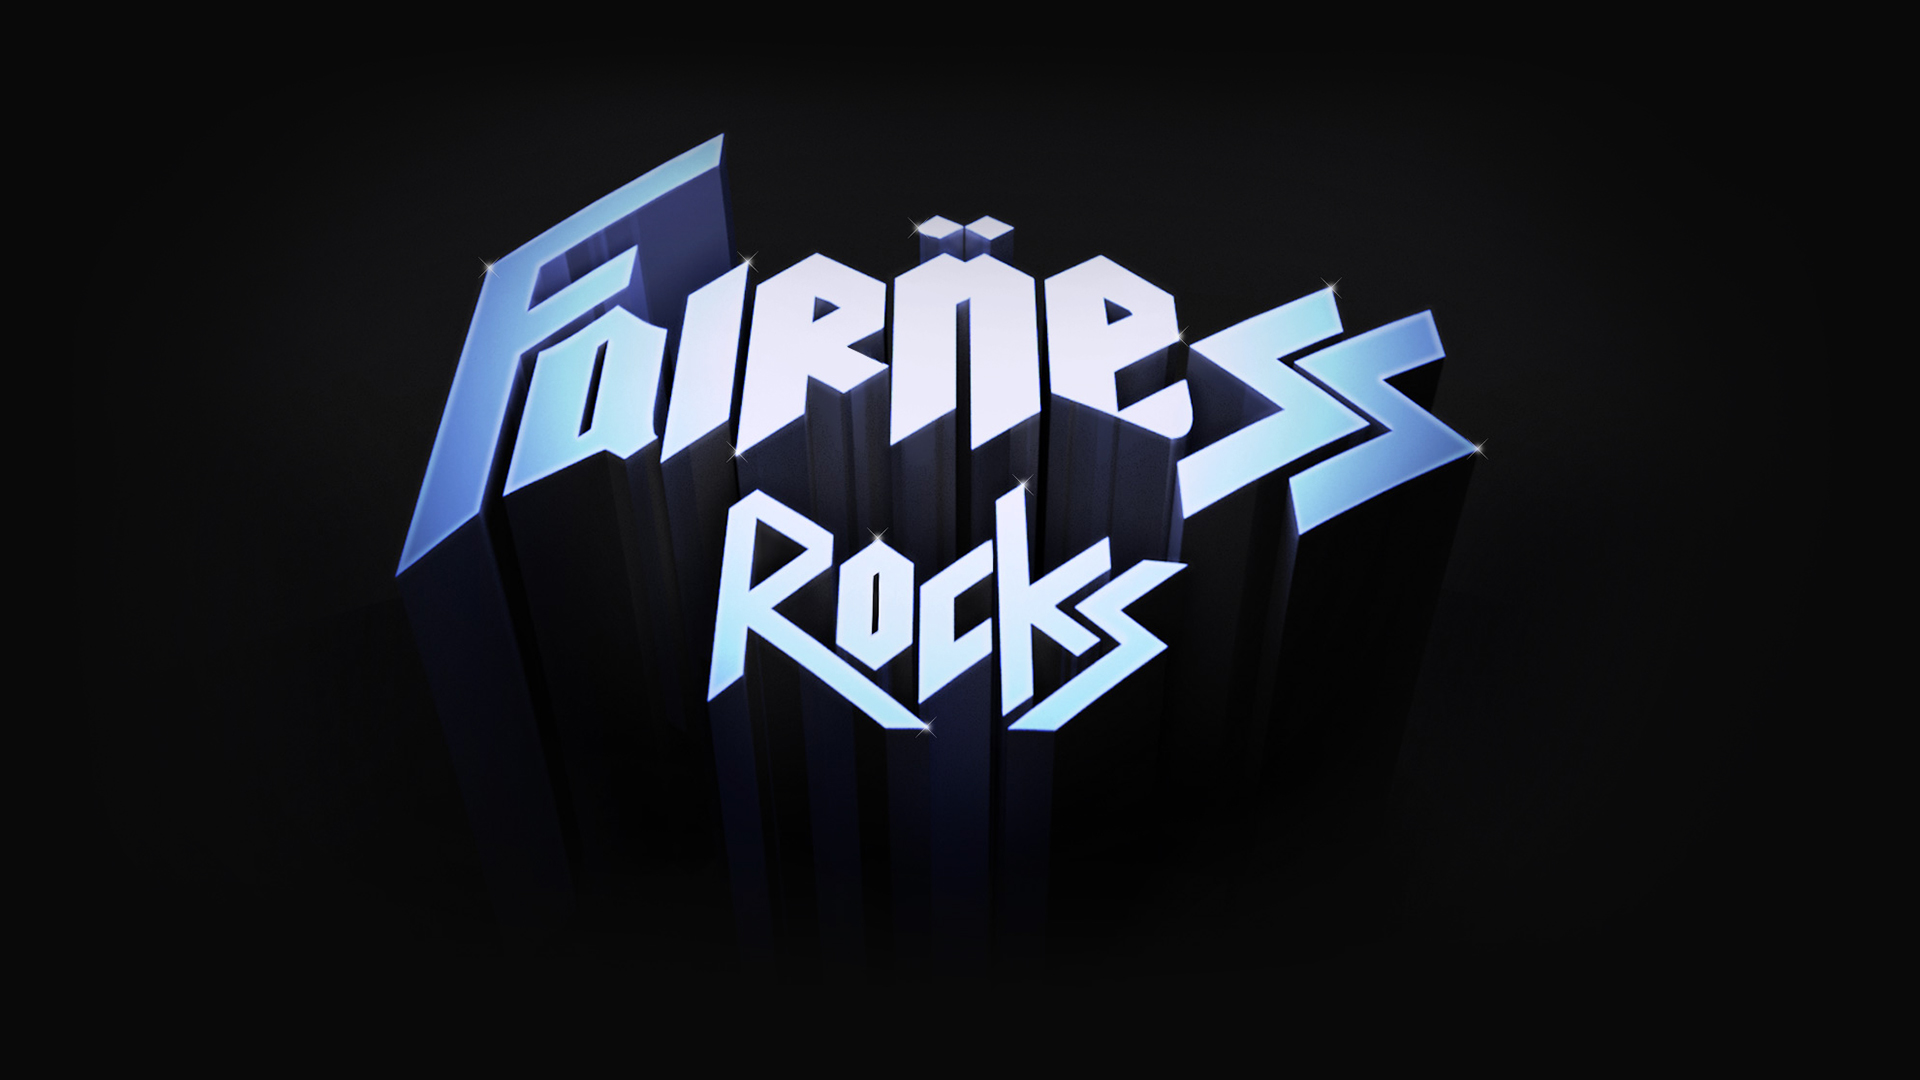 Fairness Rocks News HOW SONGWRITERS AND COMPOSERS ARE CONTRACTED AND PAID